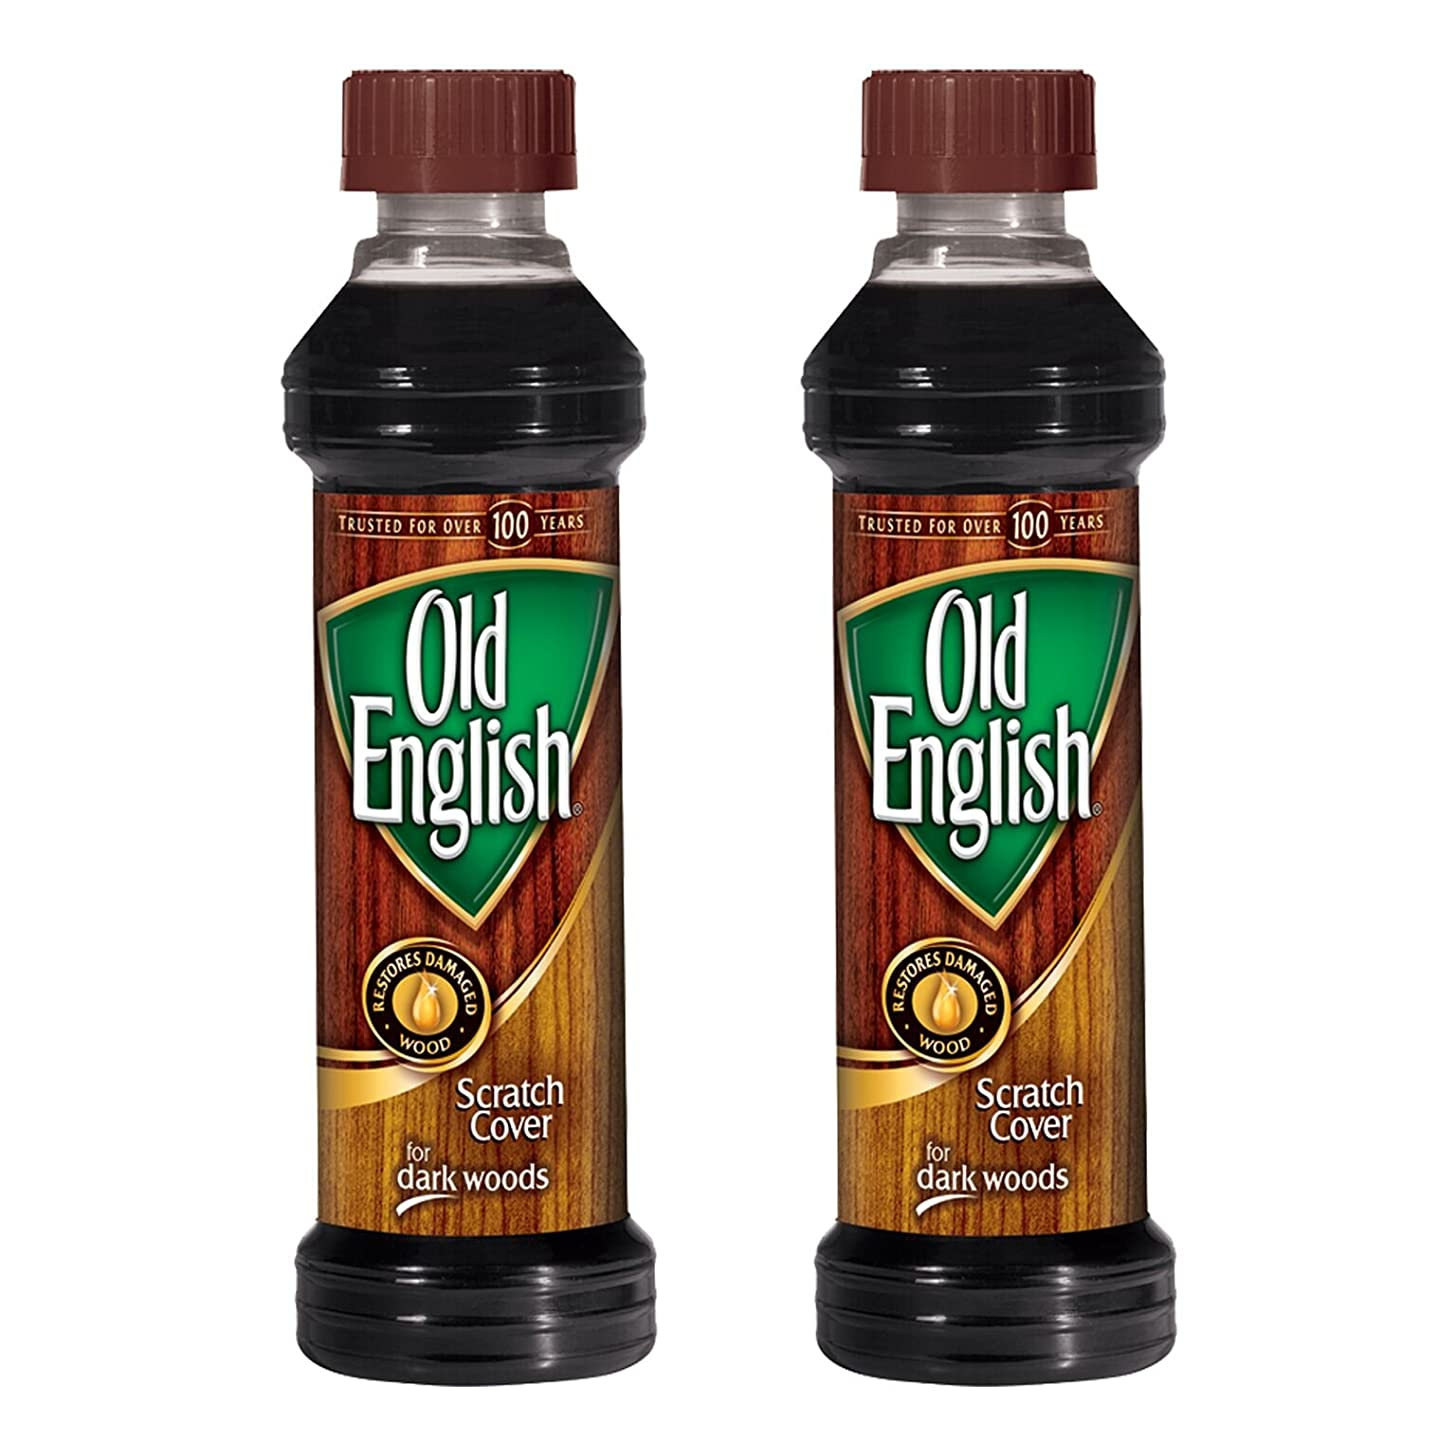 Old English Scratch Cover For Dark Woods Polish 8 oz (Pack of 2)